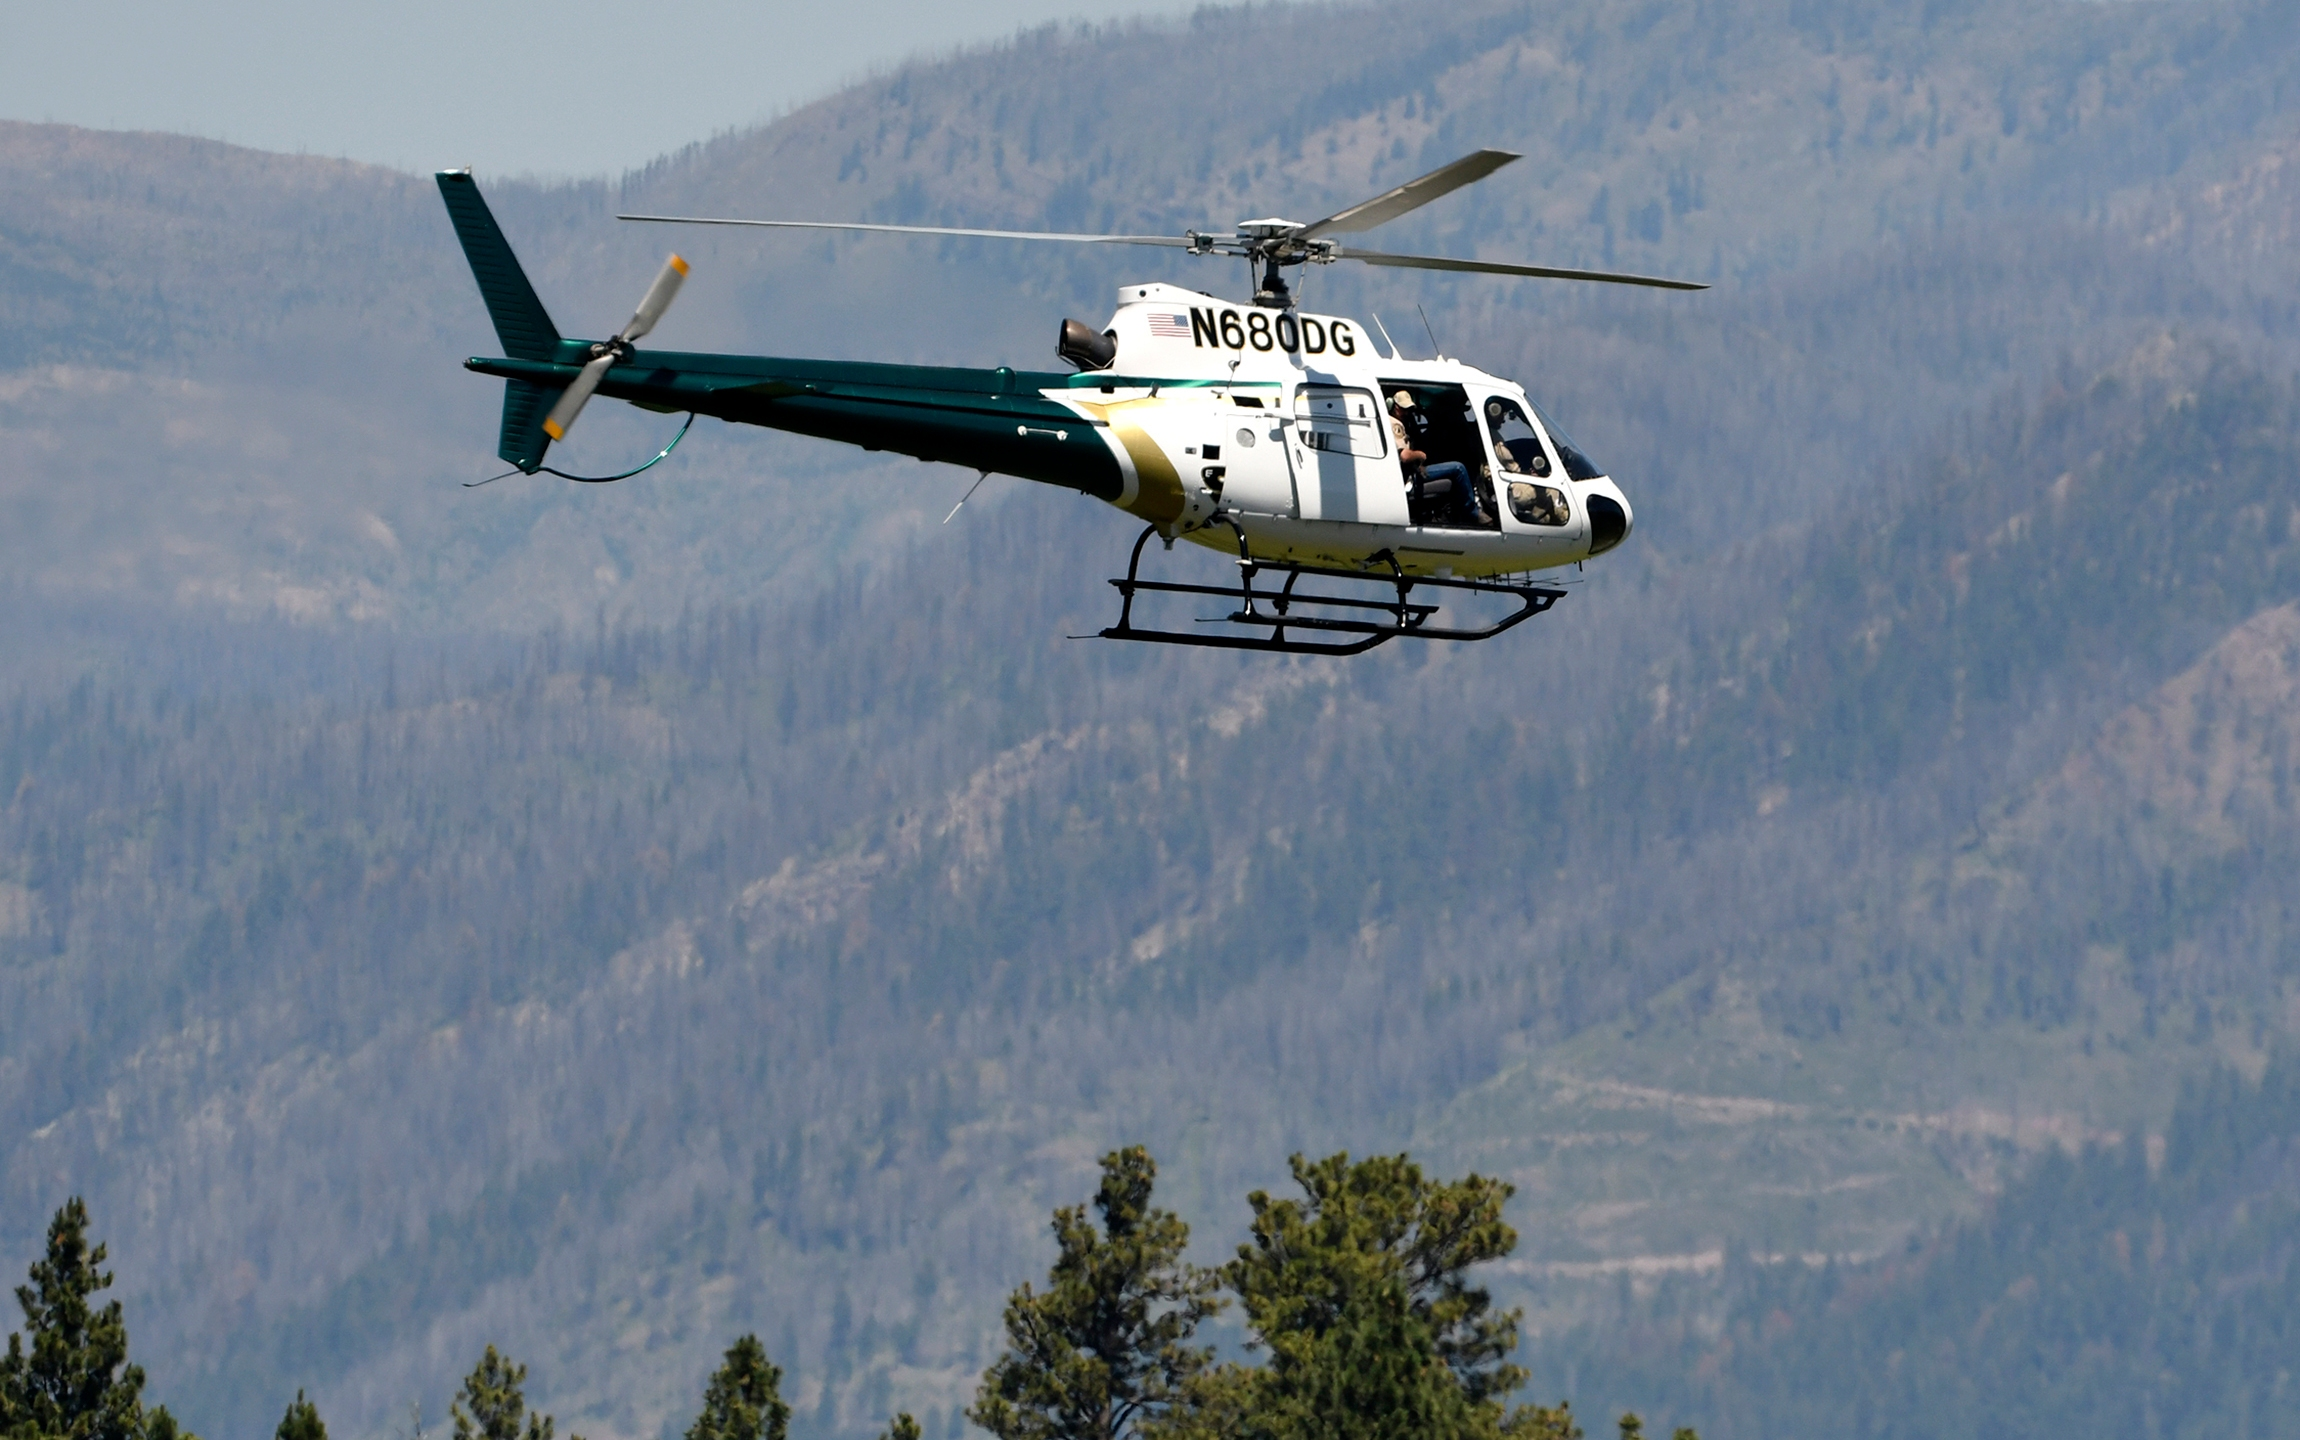 A helicopter from Montana Fish, Wildlife and Parks flies around the Ovando, Mont., area on July 6, 2201, in search of a bear that killed a camper early that morning. (Tom Bauer / The Missoulian via Associated Press)